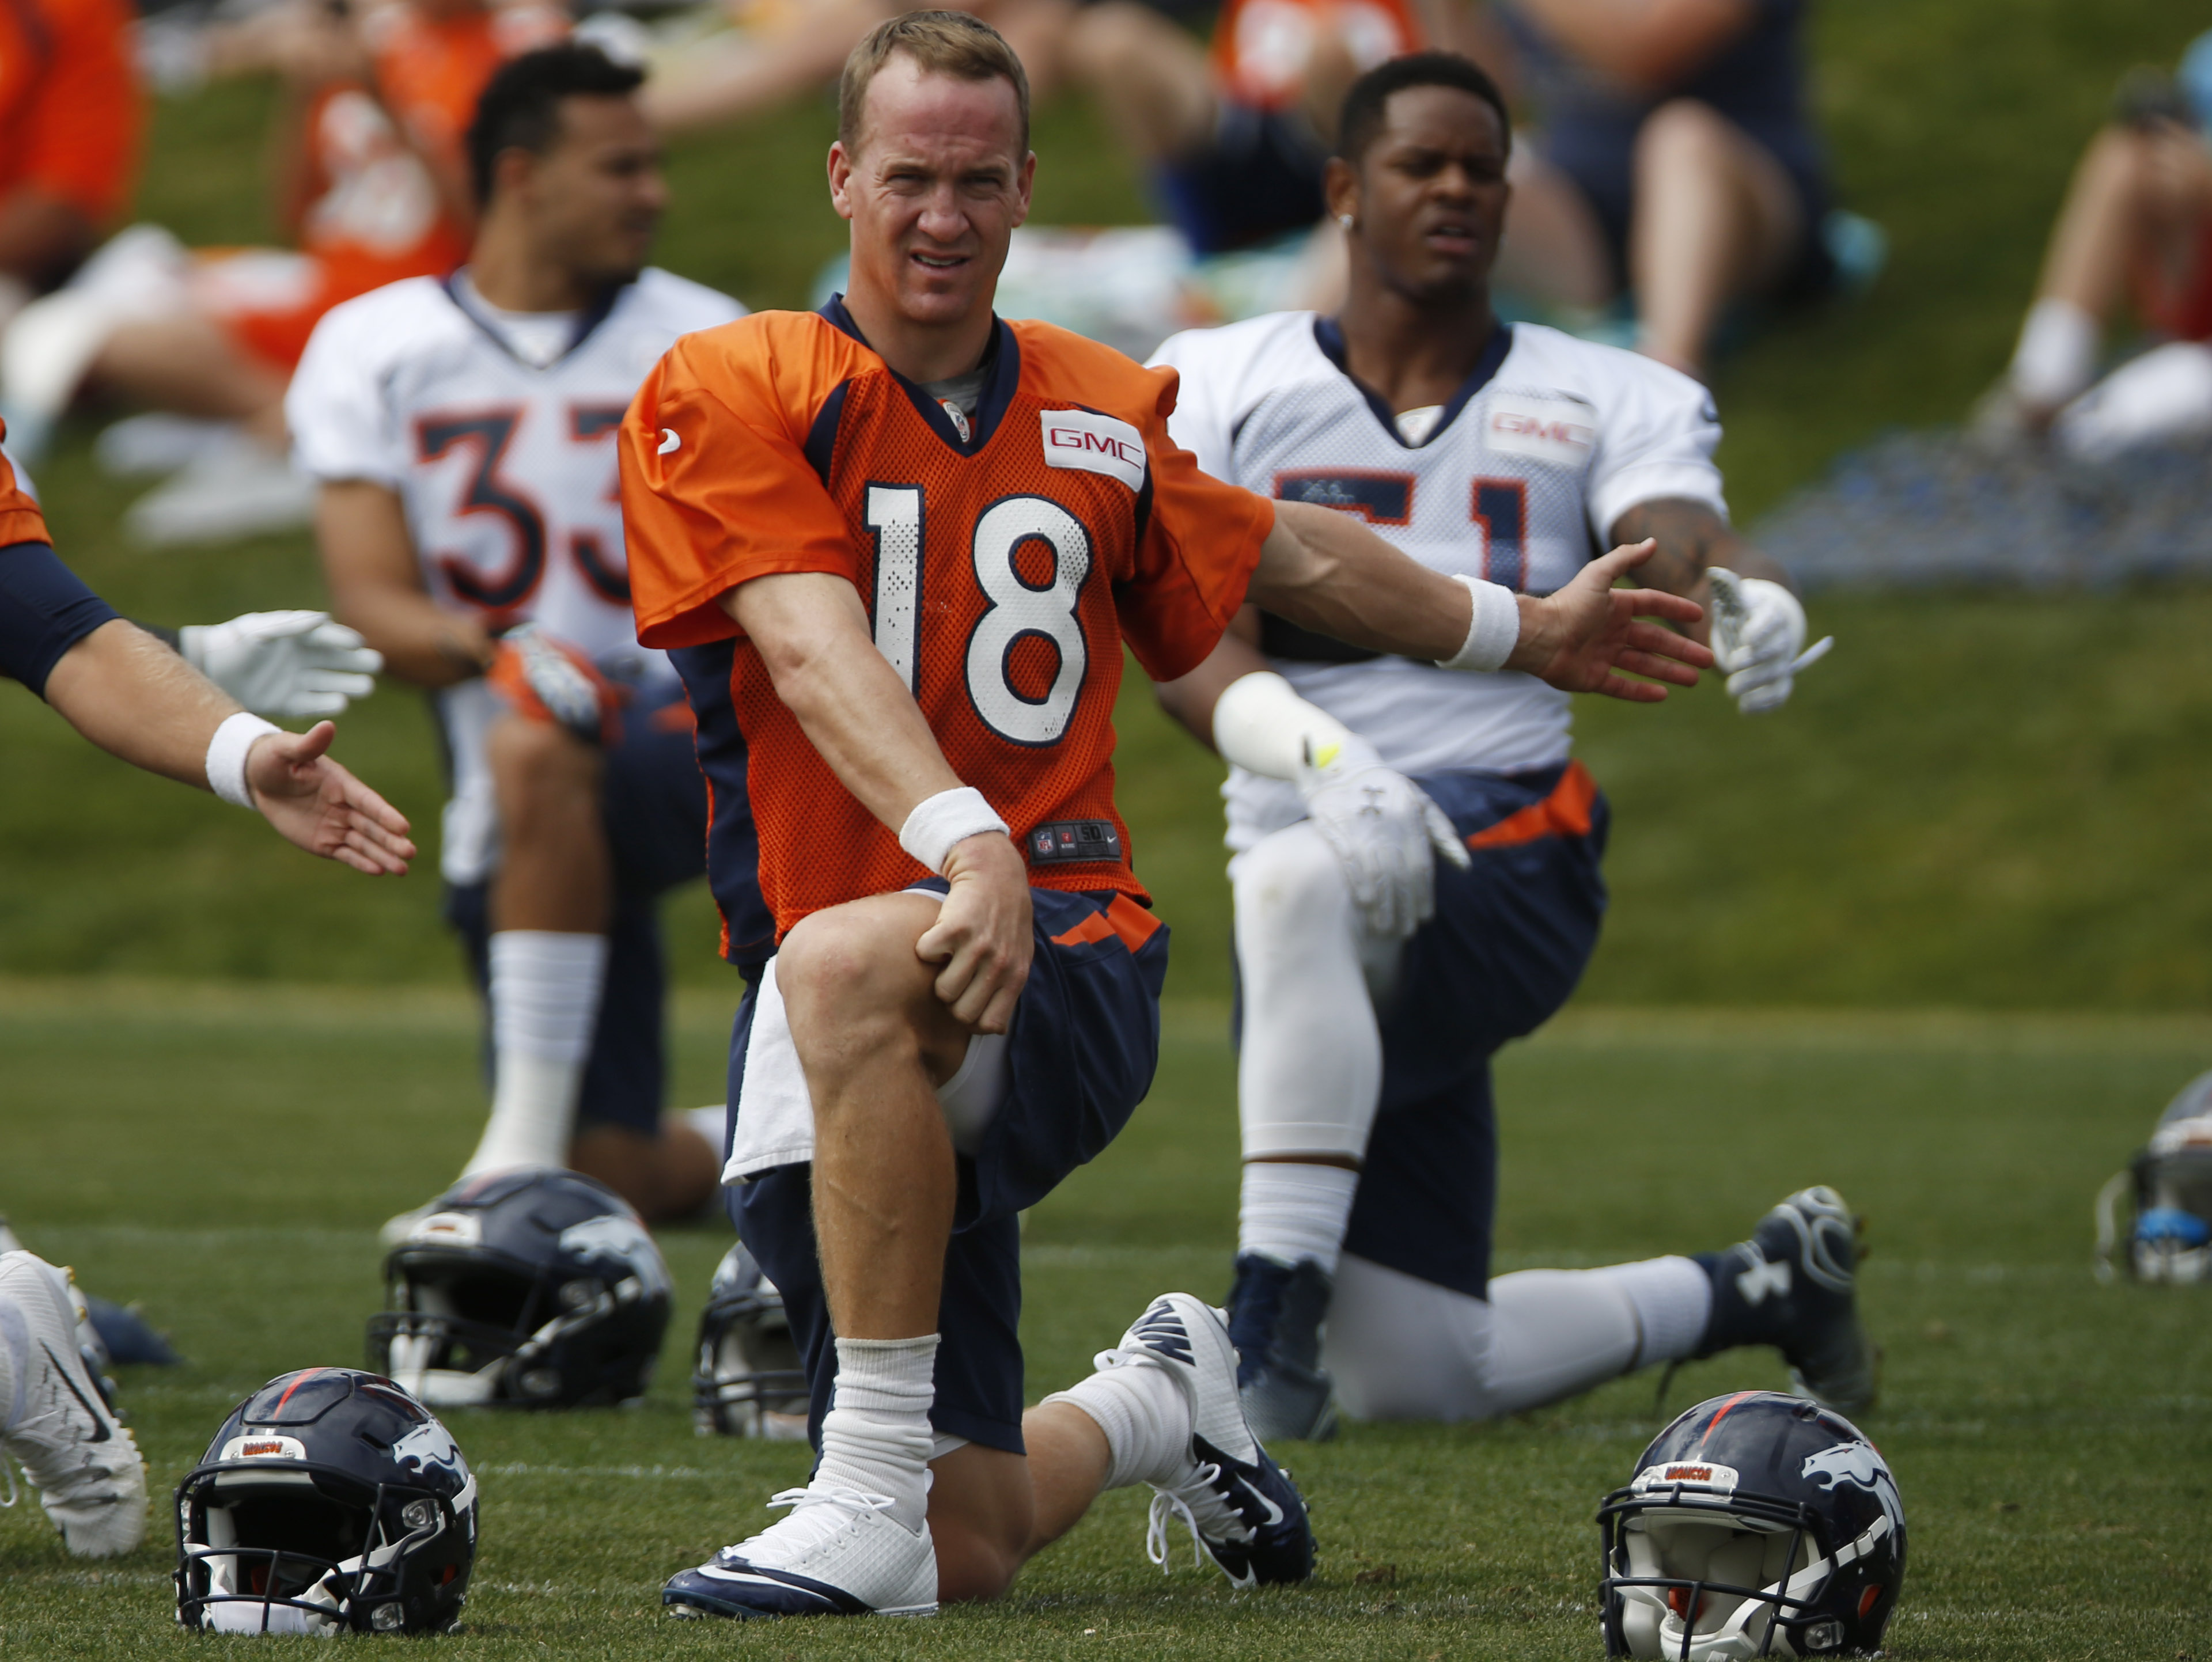 Denver Broncos quarterback Peyton Manning stretches before facing the San Francisco 49ers in an NFL football scrimmage at the Broncos' headquarters Thursday, Aug. 27, 2015, in Englewood, Colo. (AP Photo/David Zalubowski)